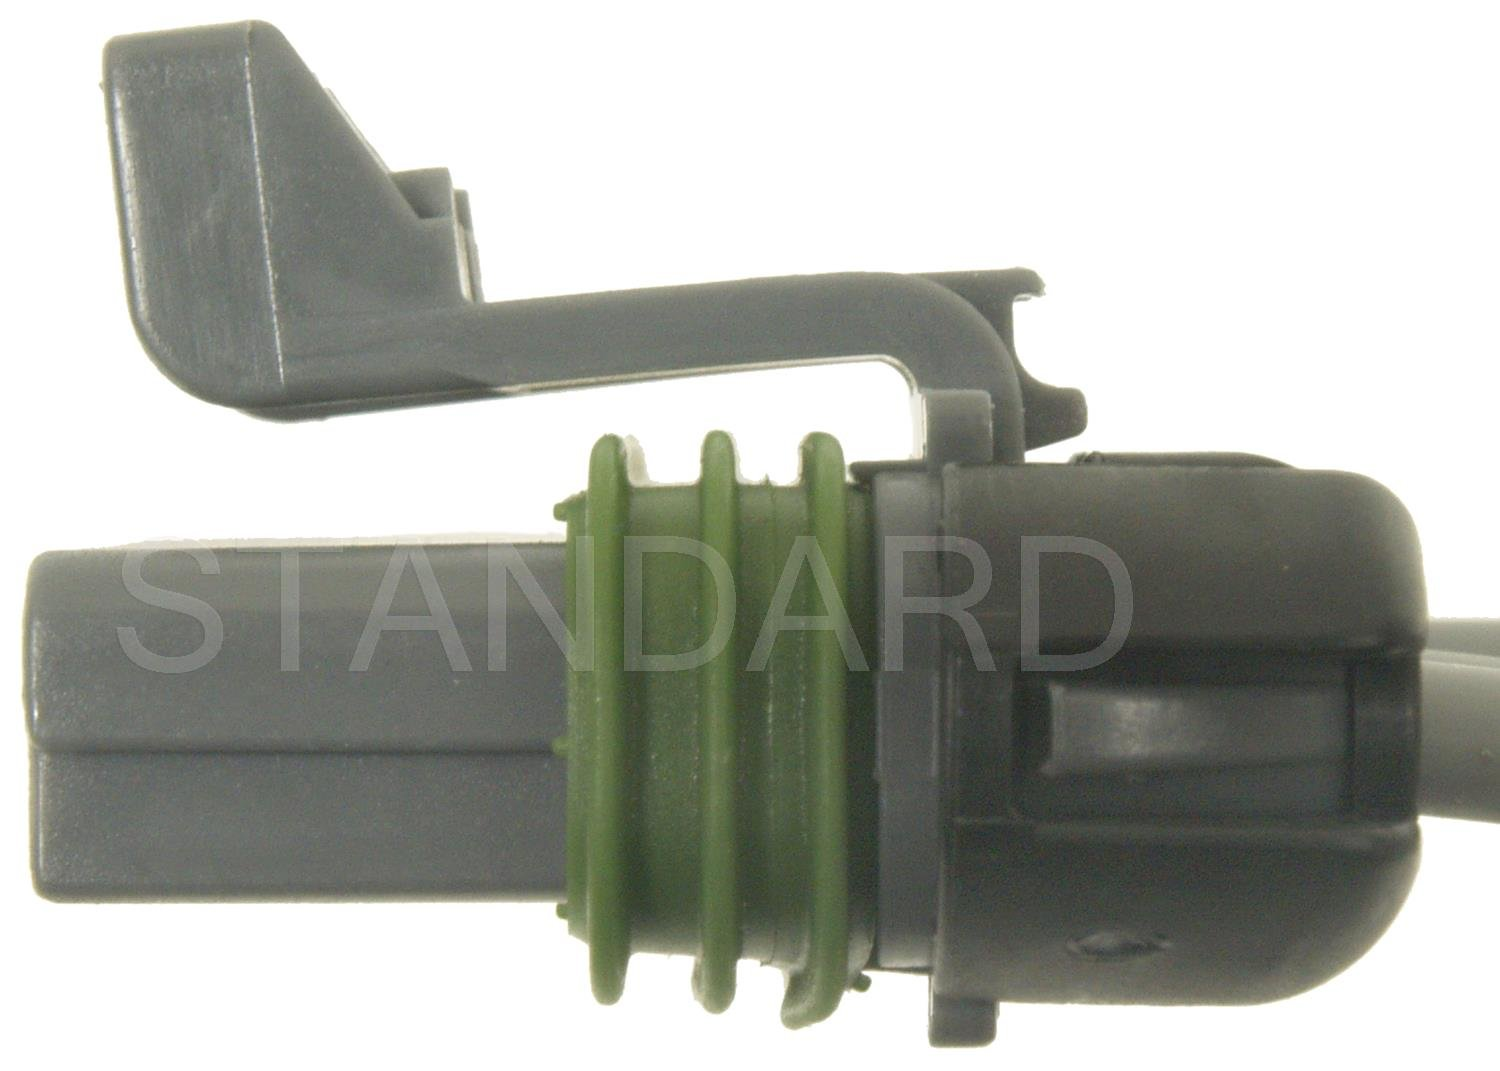 hight resolution of  2001 oldsmobile aurora body wiring harness connector si s 1352